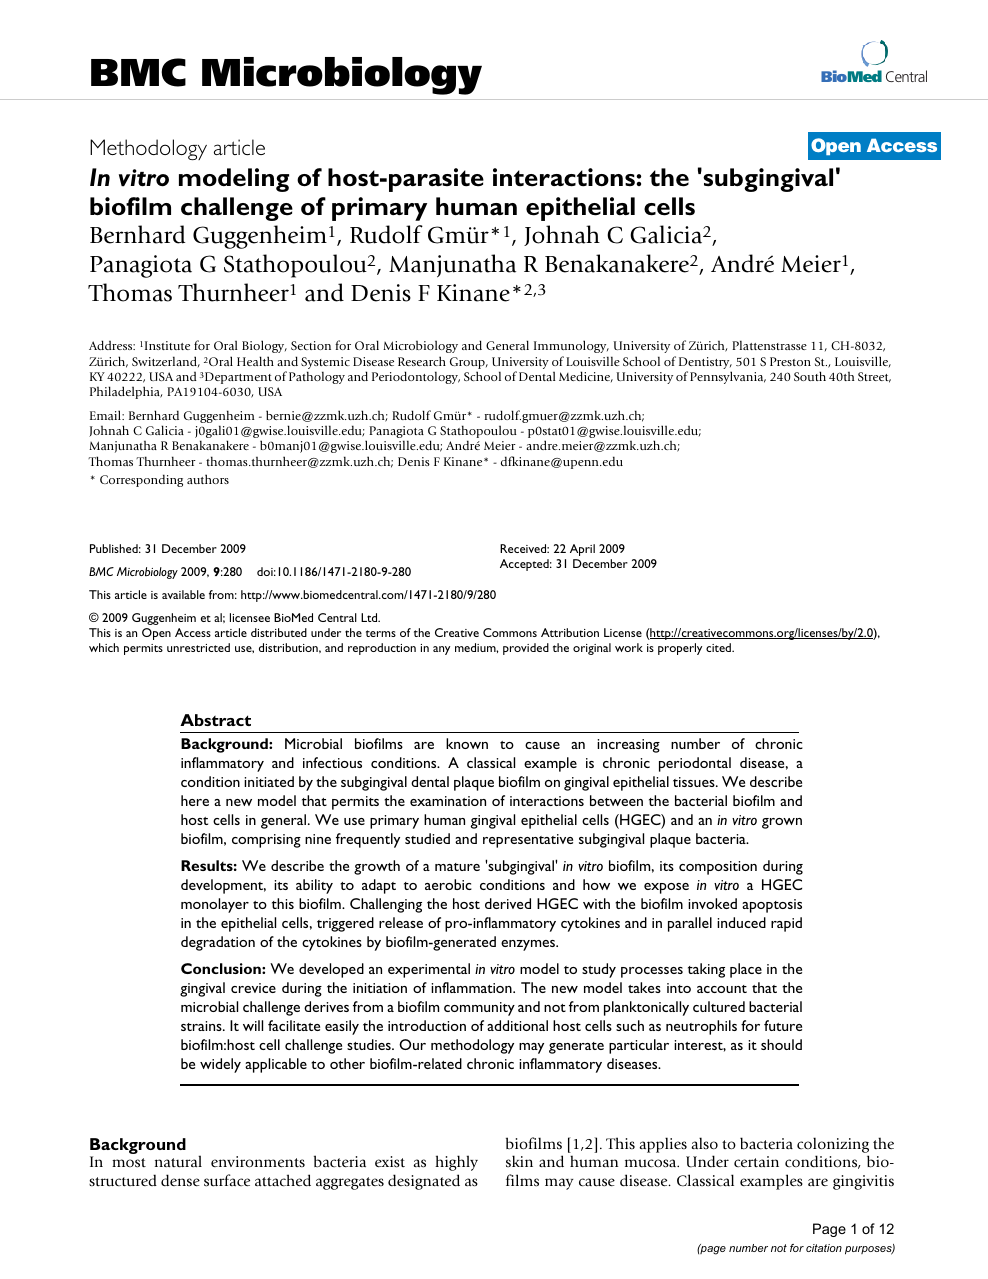 In vitro modeling of host-parasite interactions: the 'subgingival